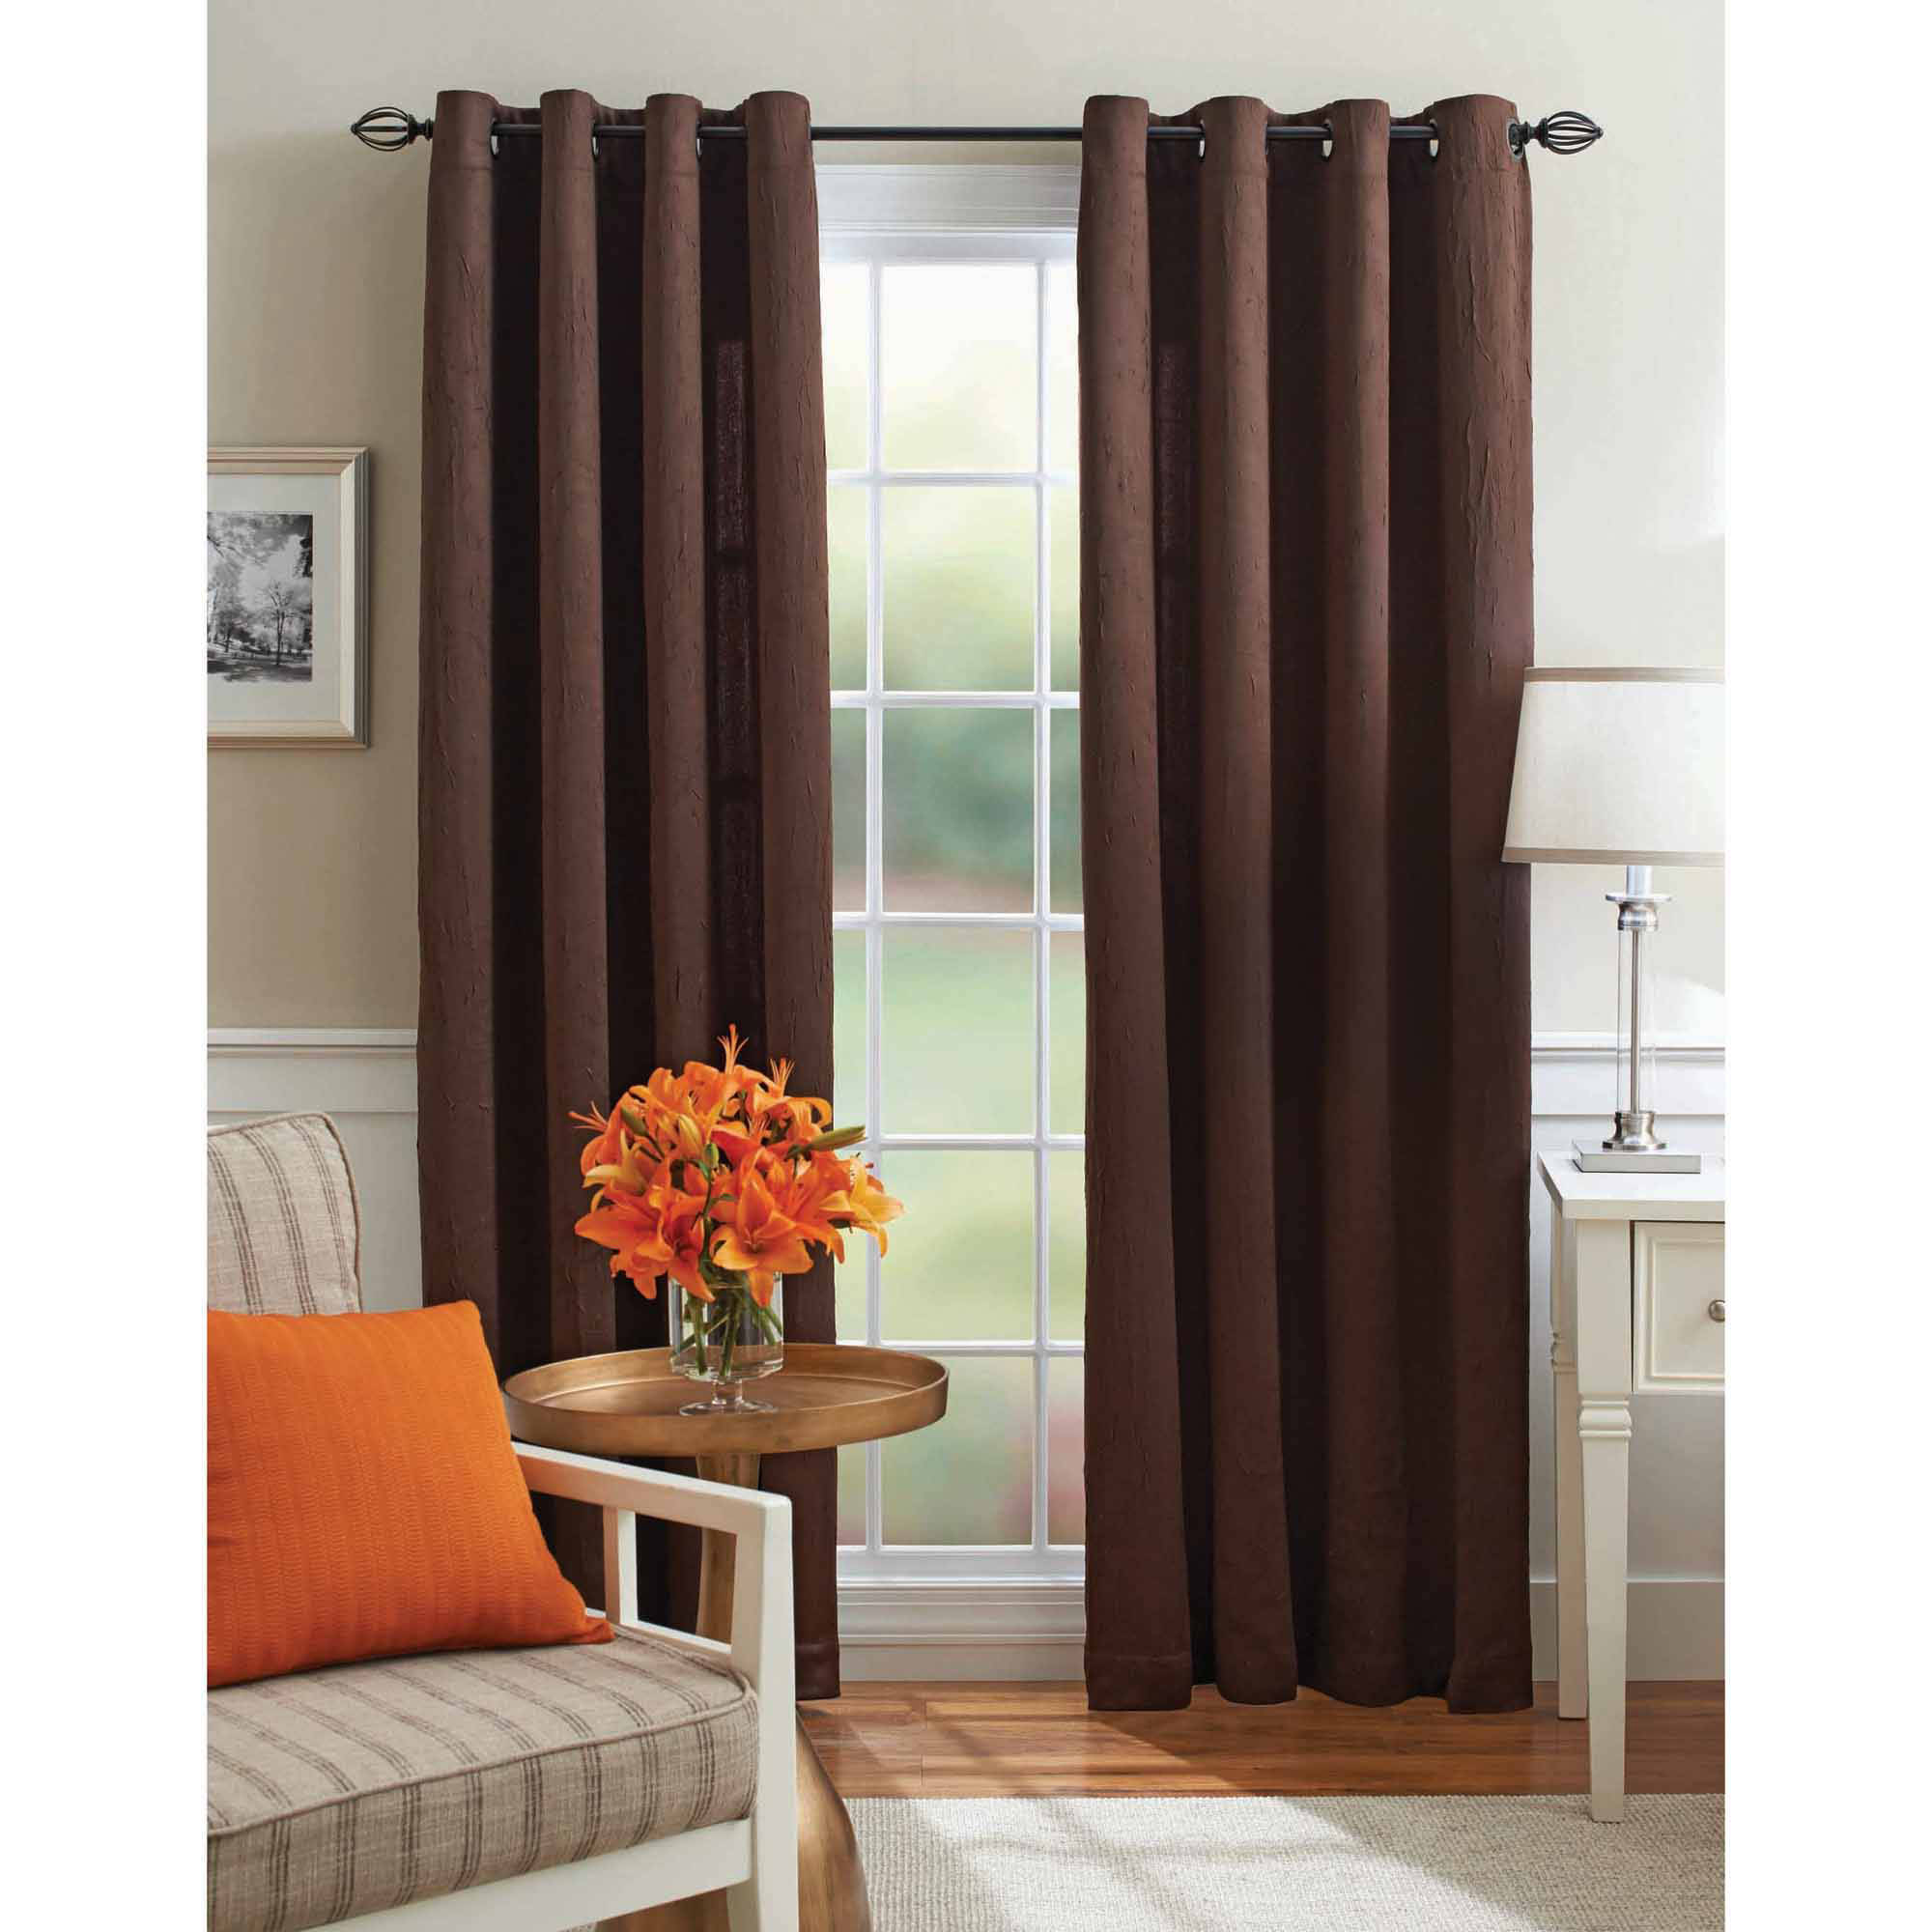 Better Homes and Gardens Semi-Sheer Grommet Curtain Panel, Bleached Linen - Walmart.com